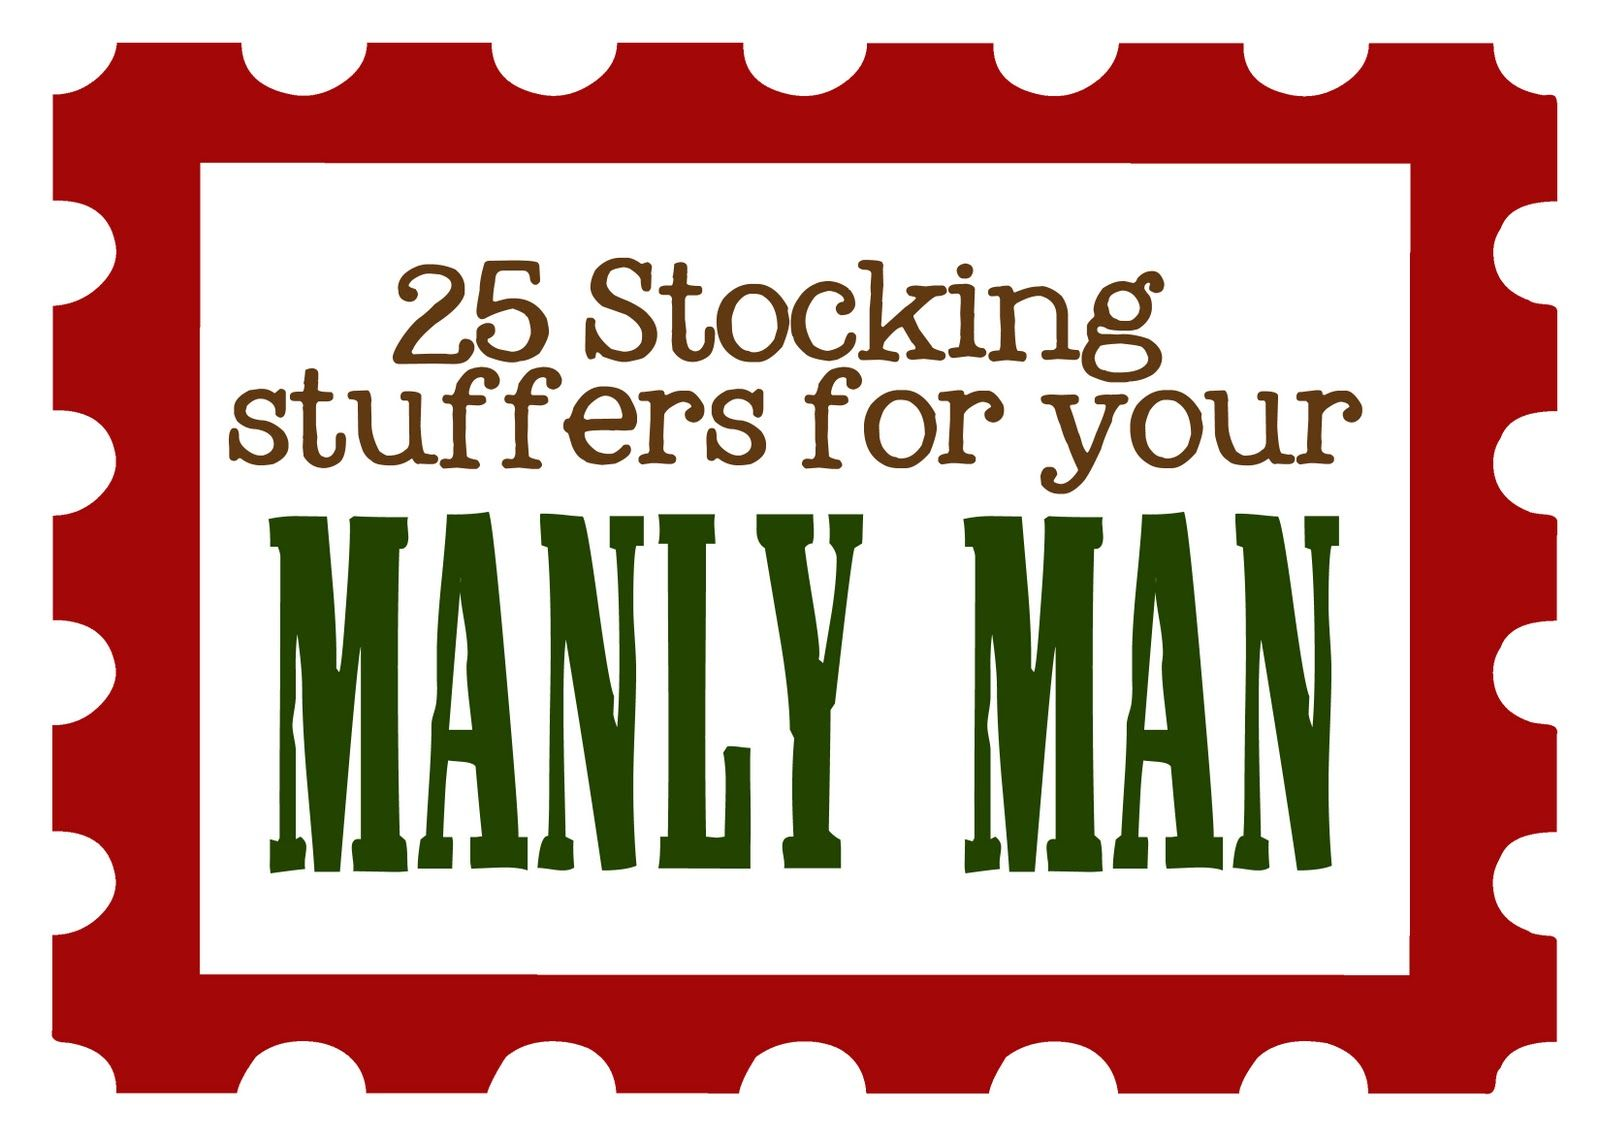 346d94df7a 25 Stocking Stuffers for your Manly Man! Some good ideas here! Like  Jerky